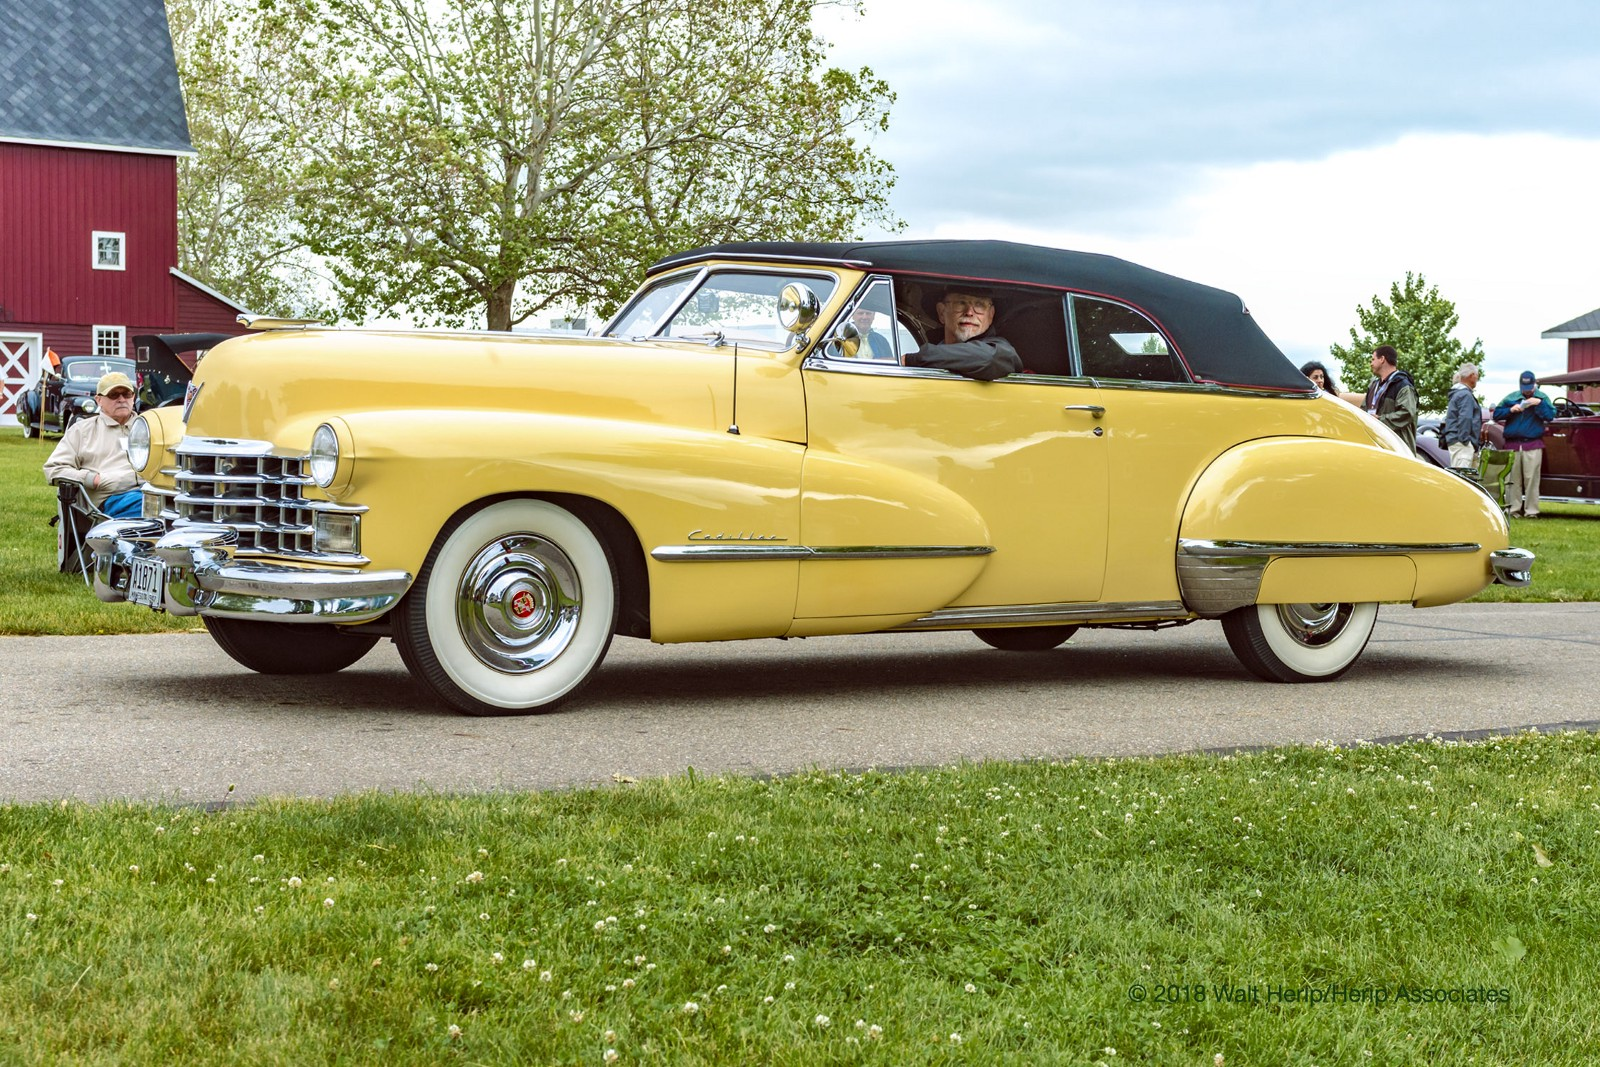 Mosky's Musings: CCCA Classics — 1947 Cadillac 62 & the 1948 Lincoln  Continental